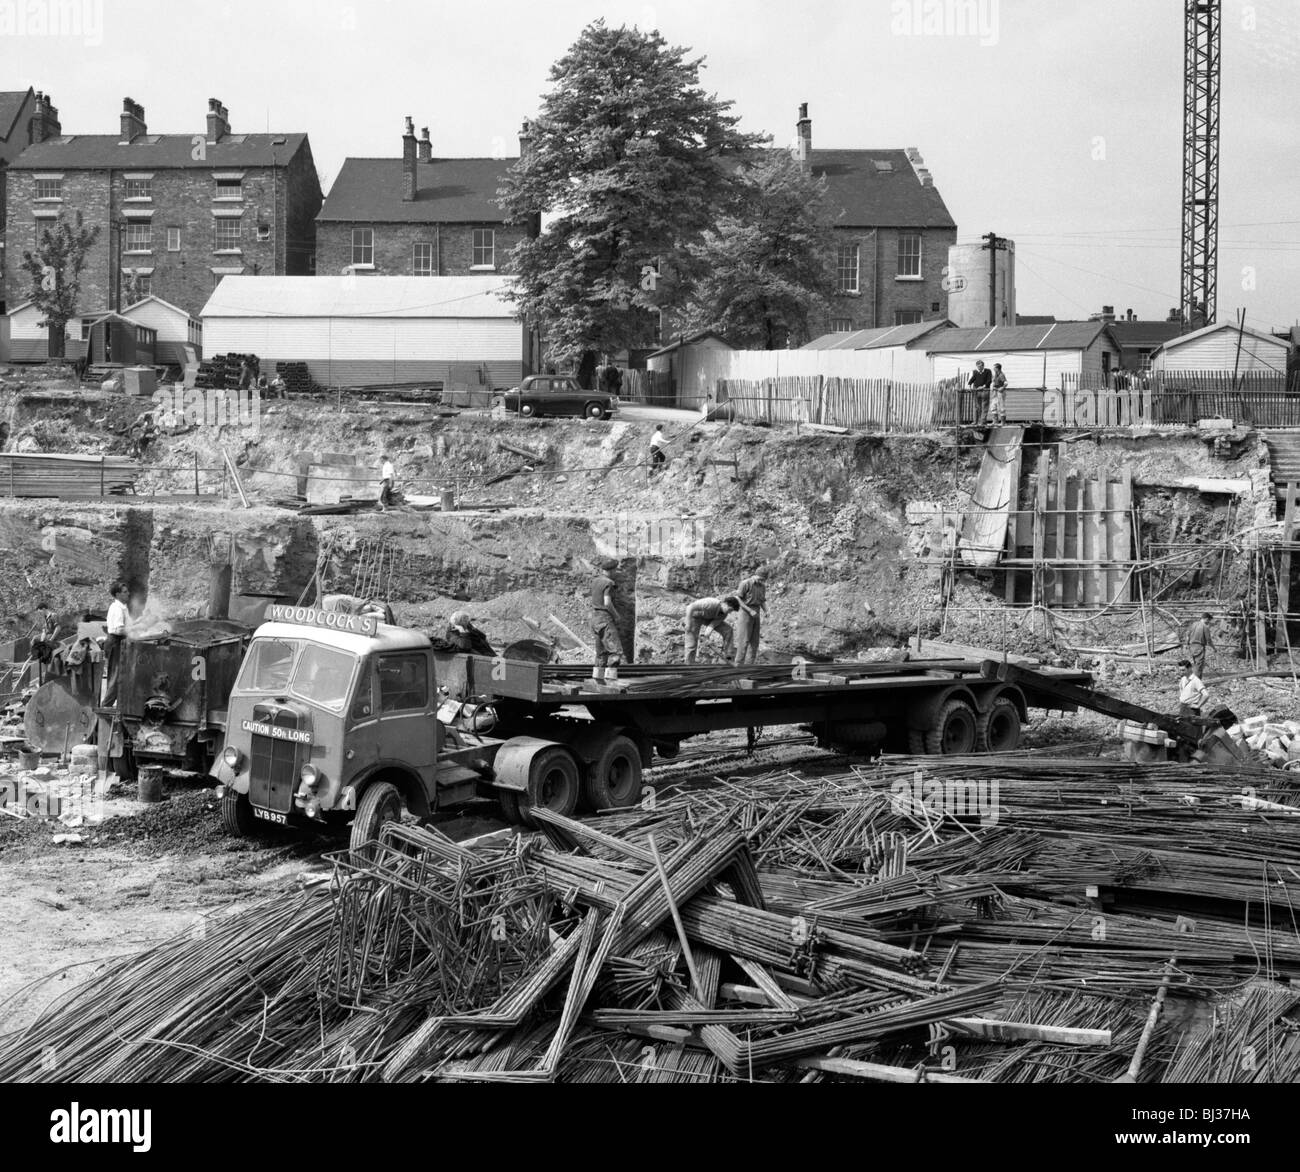 An AEC Mammoth Major on the building site for Sheffield University, 1960. Artist: Michael Walters - Stock Image